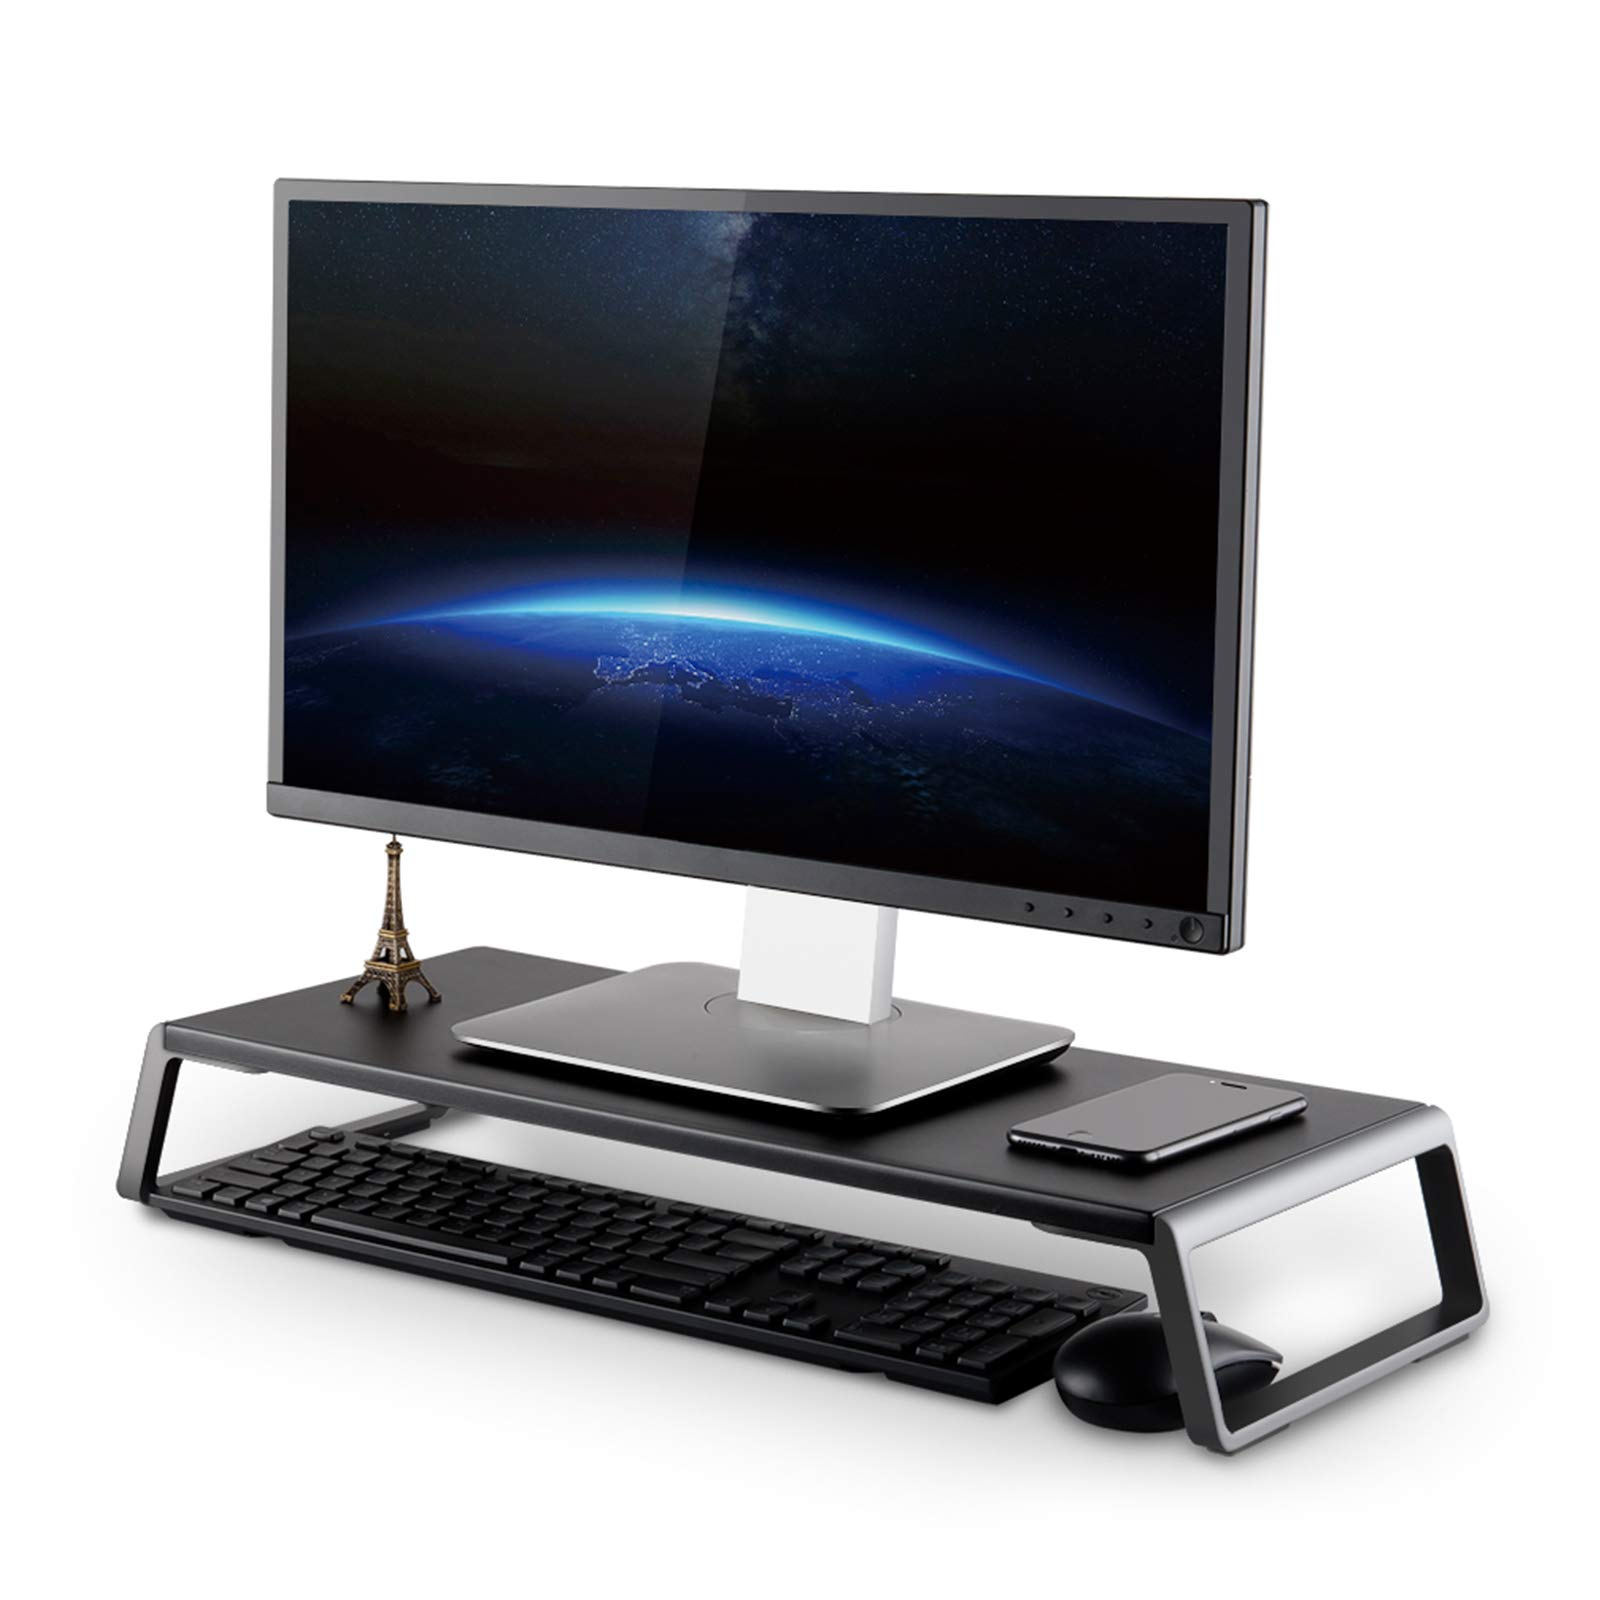 UPERGO Monitor Stand Riser with Metal Feet for Computer Laptop iMac TV LCD Display Printer, Computer Monitor Riser with Desk Tabletop Organizer 20x9.45inch Sturdy Platform Save Space,Black(ID-20B) by UPERGO